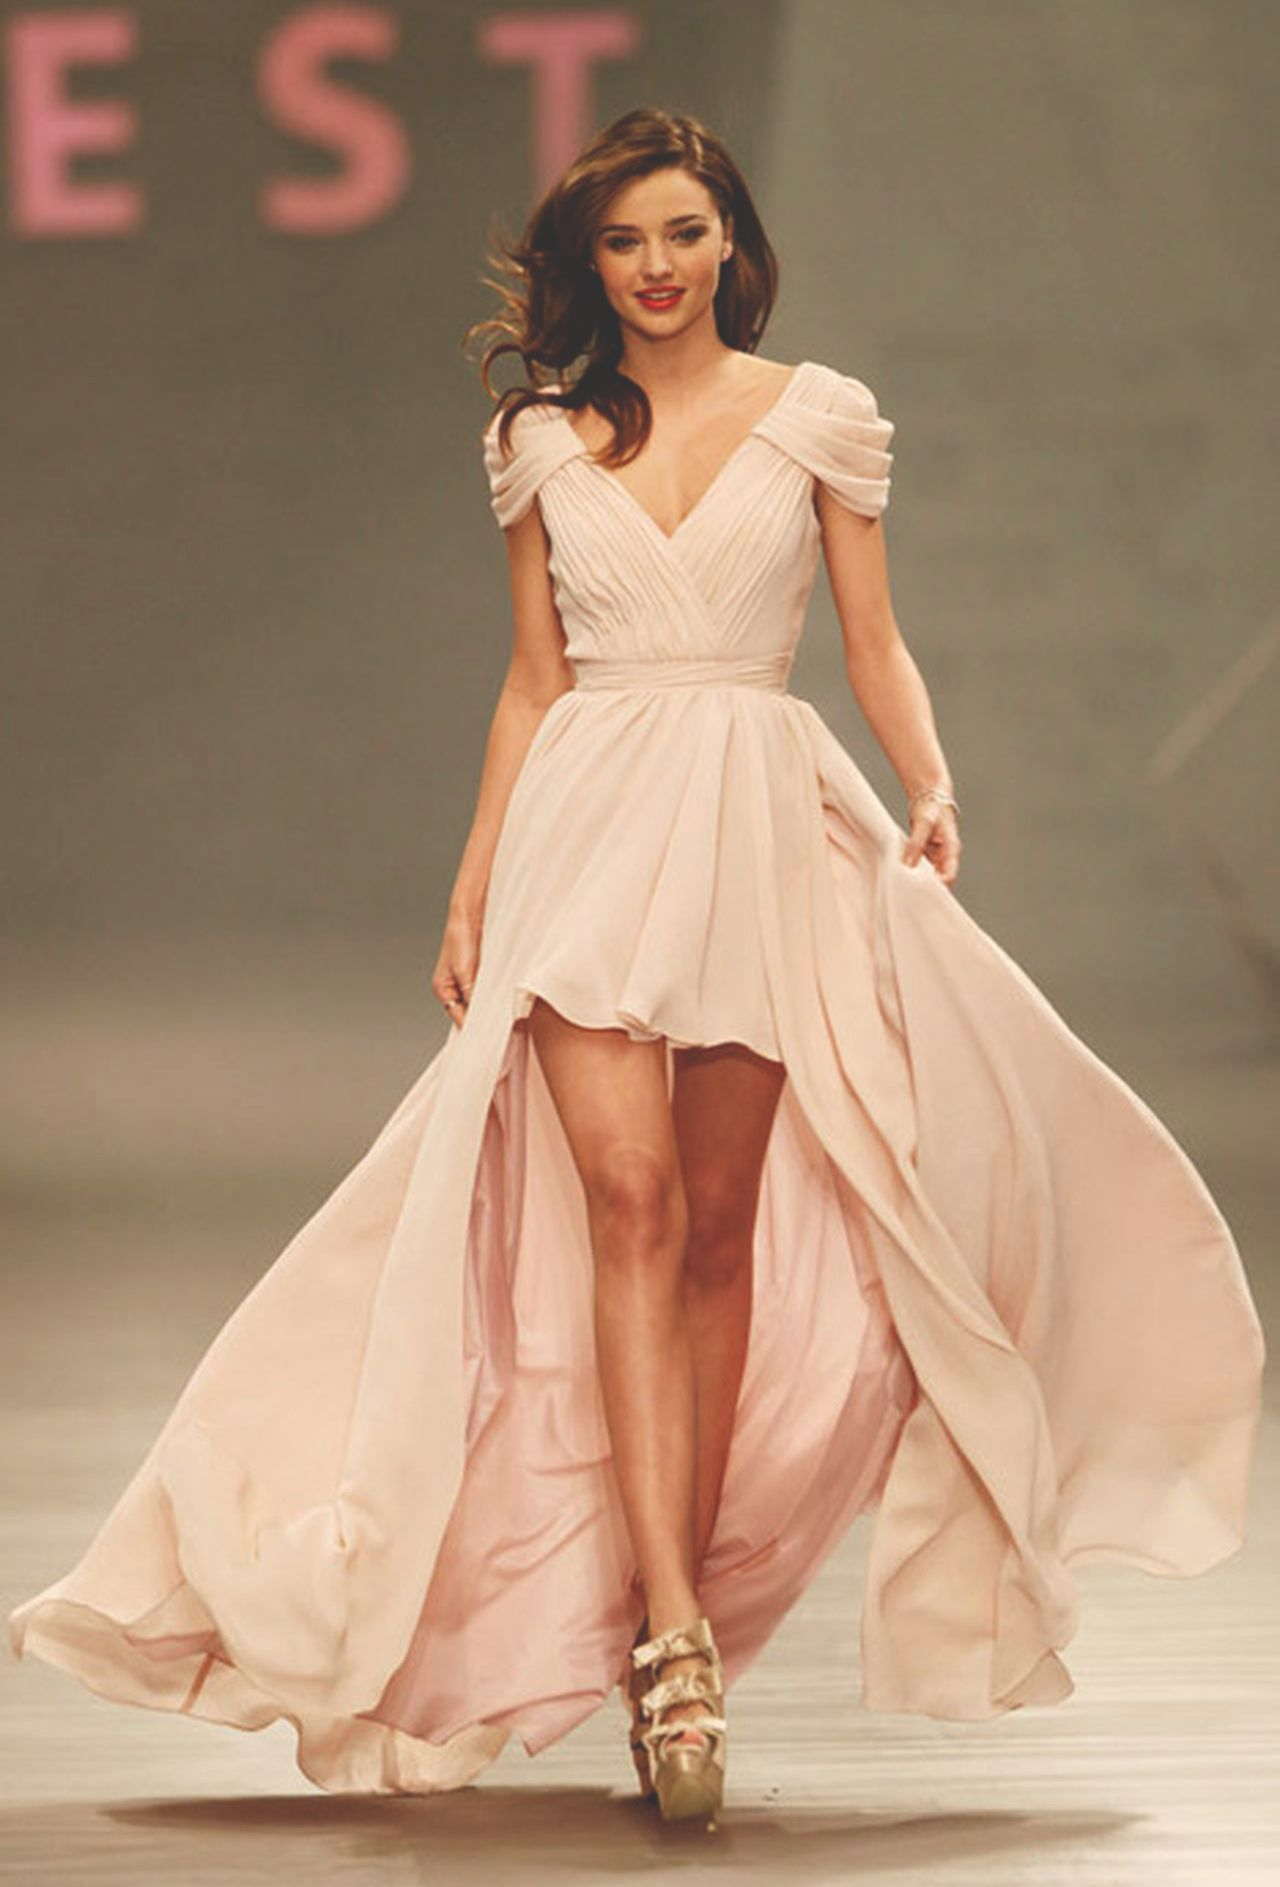 Pastel pink bridesmaid dress  EDITORIAL IMAGES  Inspiration by Fashion  Pinterest  Editorial